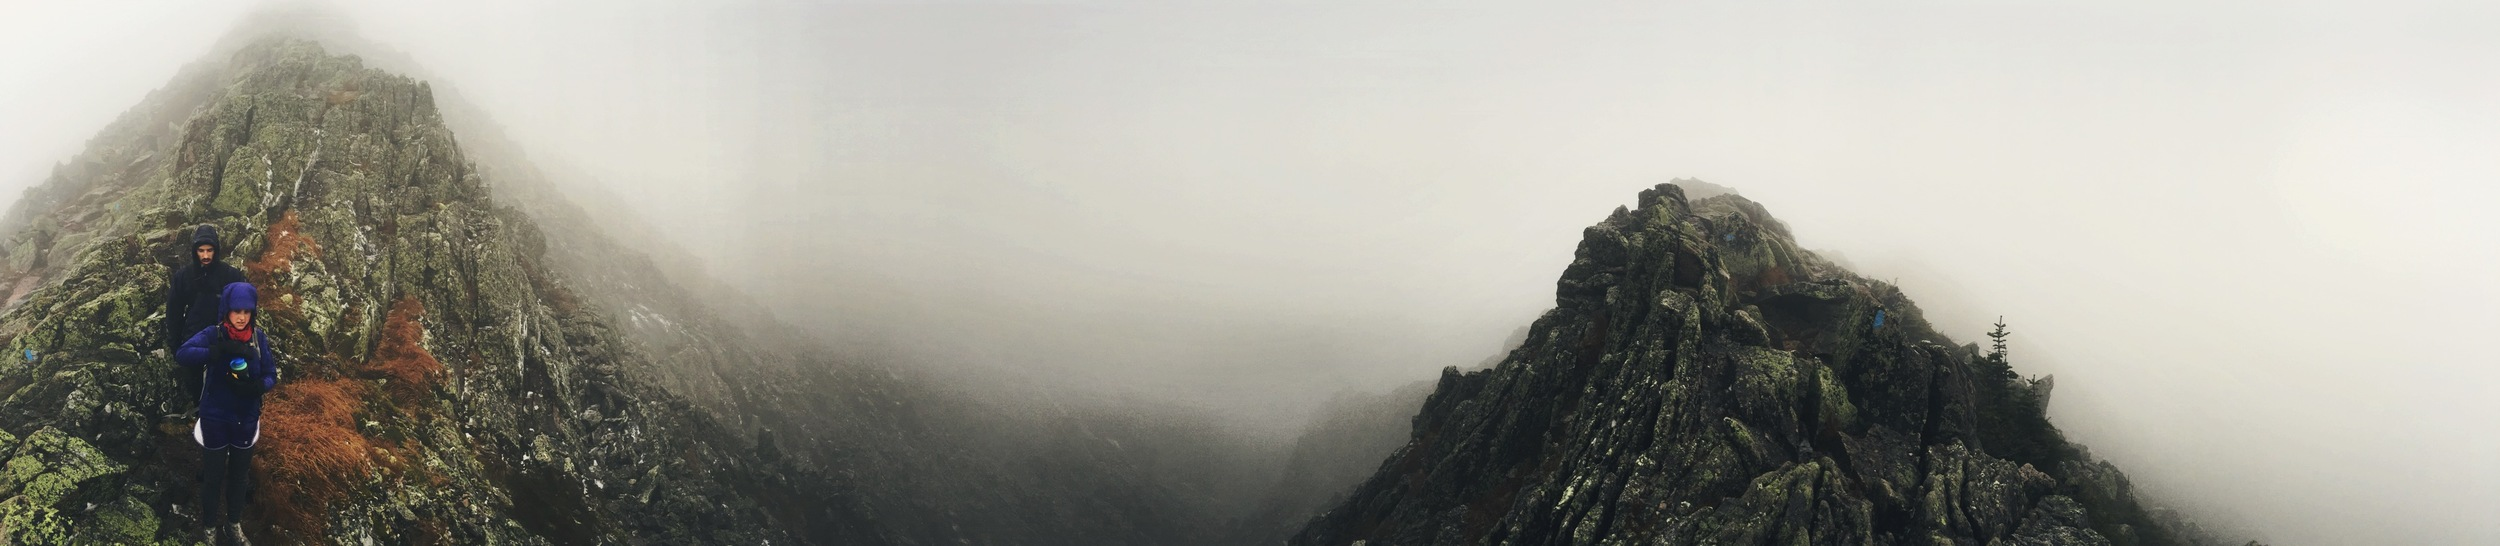 Alpine and Twirls, panoramic view of the Knife Edge